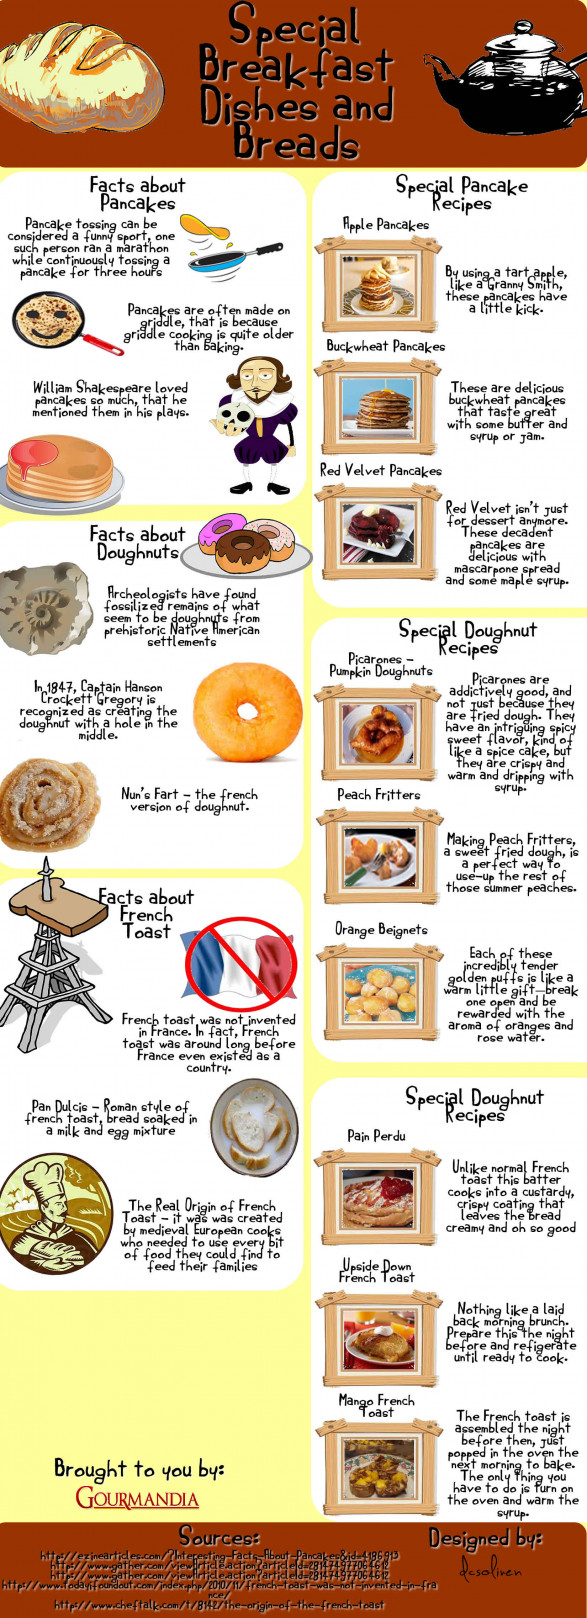 Special Breakfast Dishes and Desserts